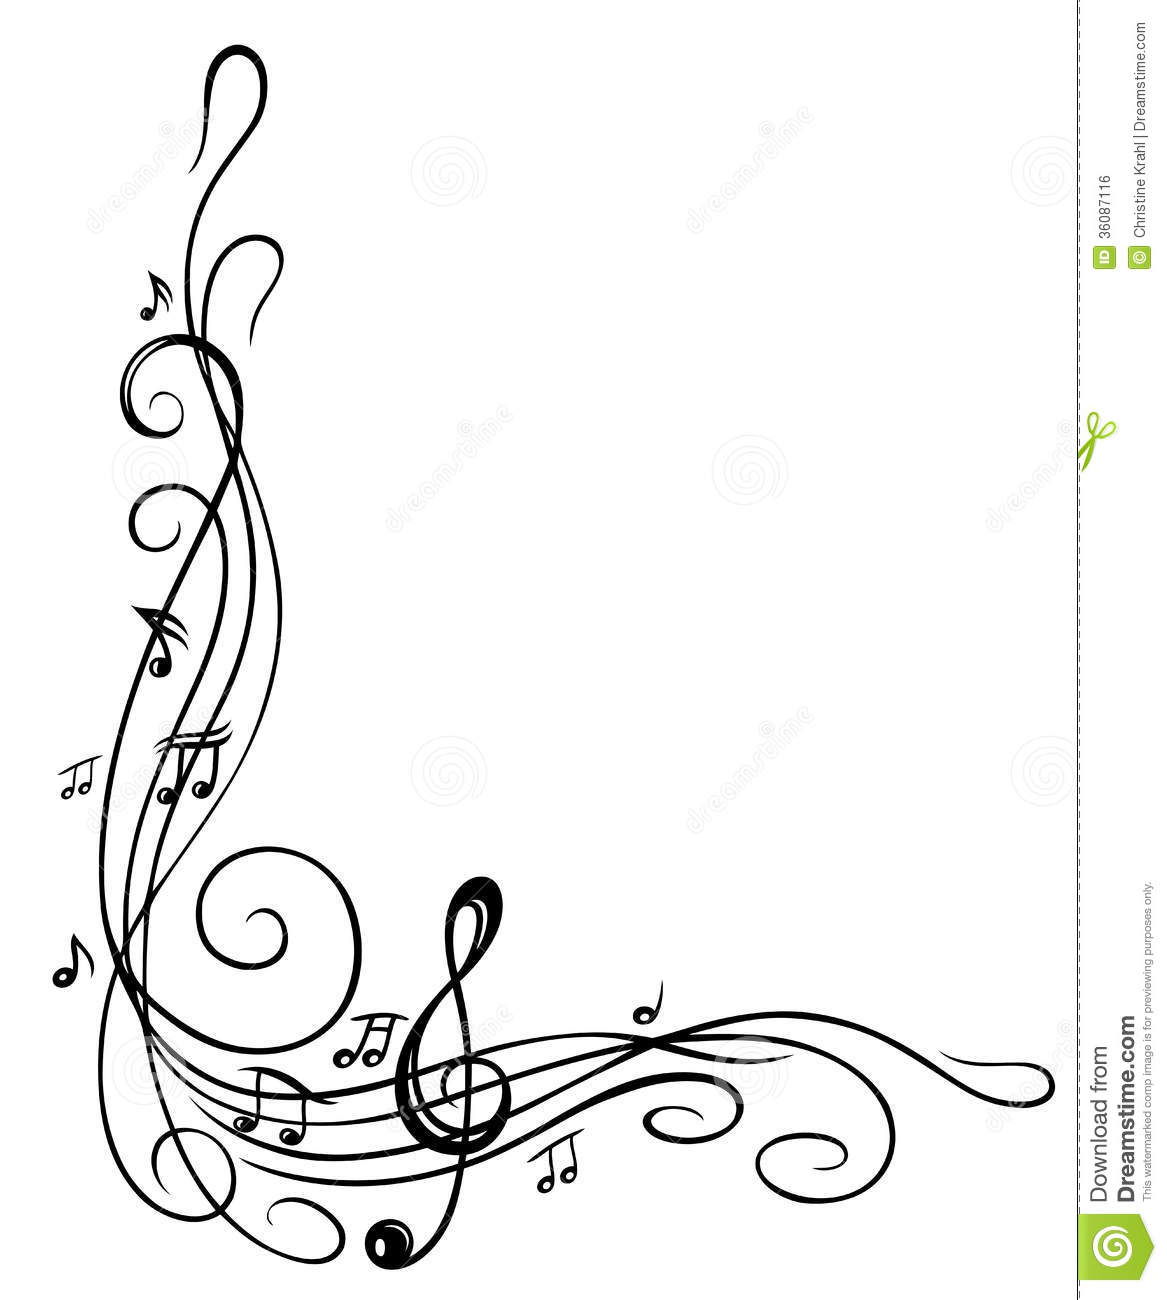 Clef, Music Sheet Royalty Free Stock Image - Image: 36087116